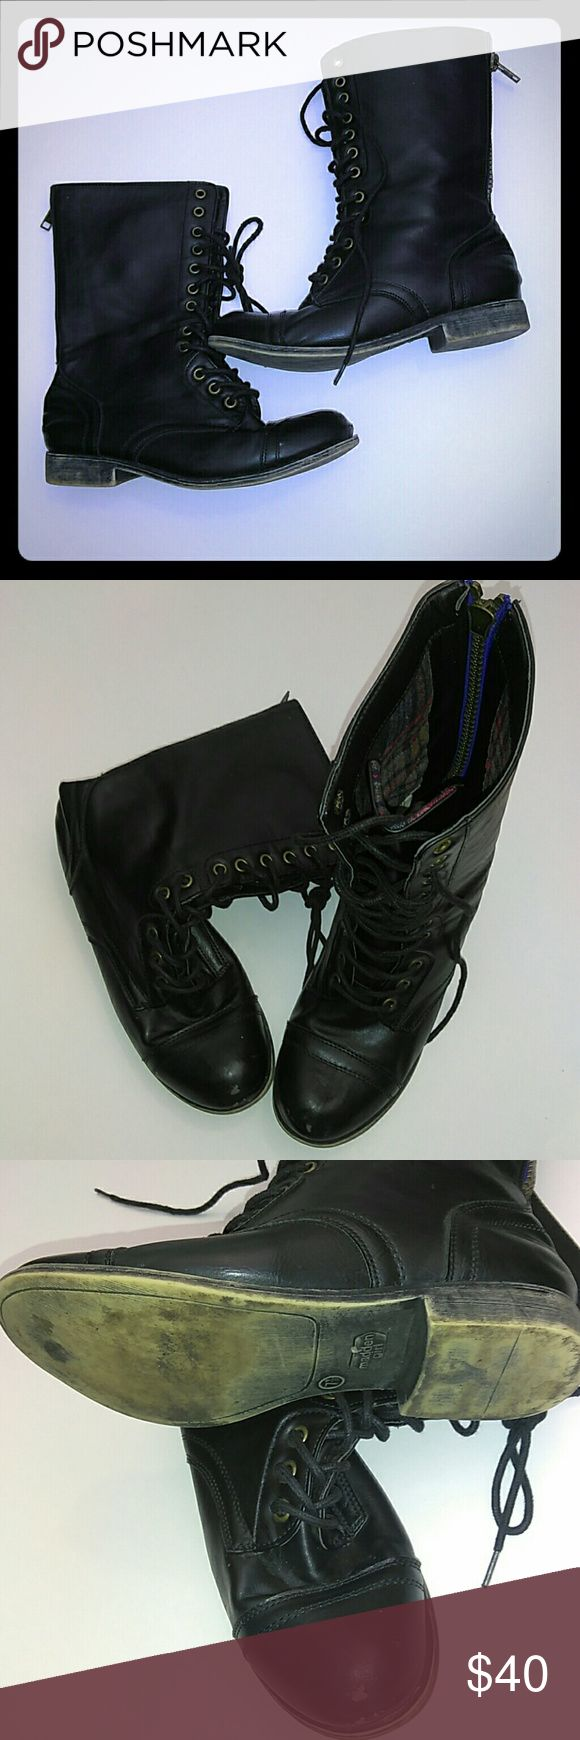 Womans Combat boots Used but in good condition only light pilling in the front of boots Madden Girl Shoes Combat & Moto Boots